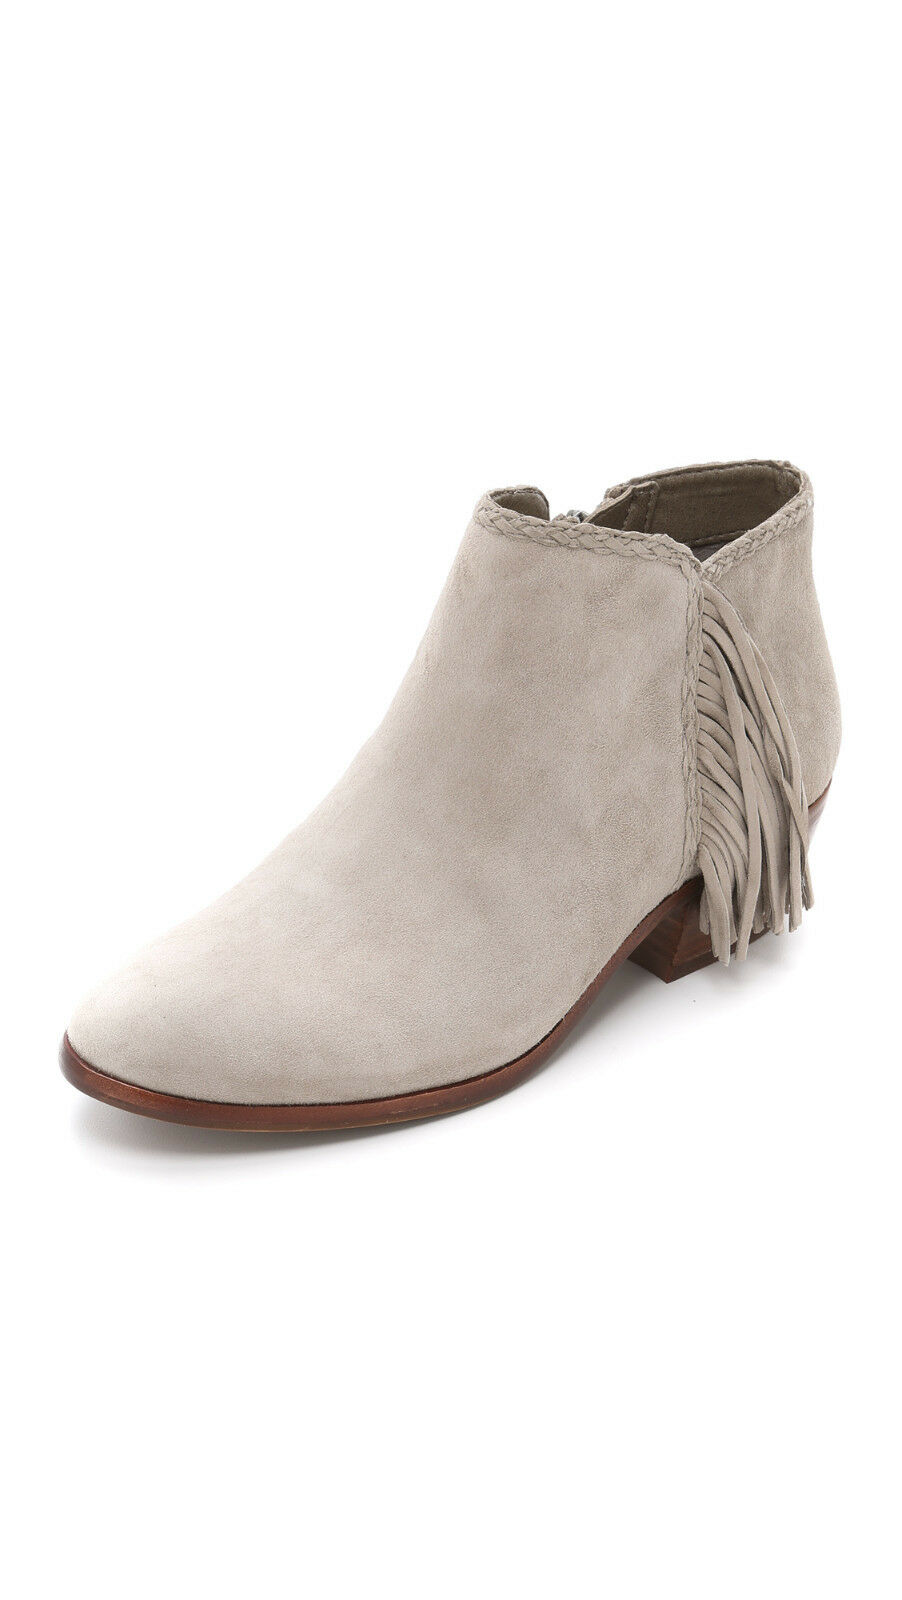 Sam Edelman 'Paige' Fringed Ankle Booties in PUTTY (10.5) +